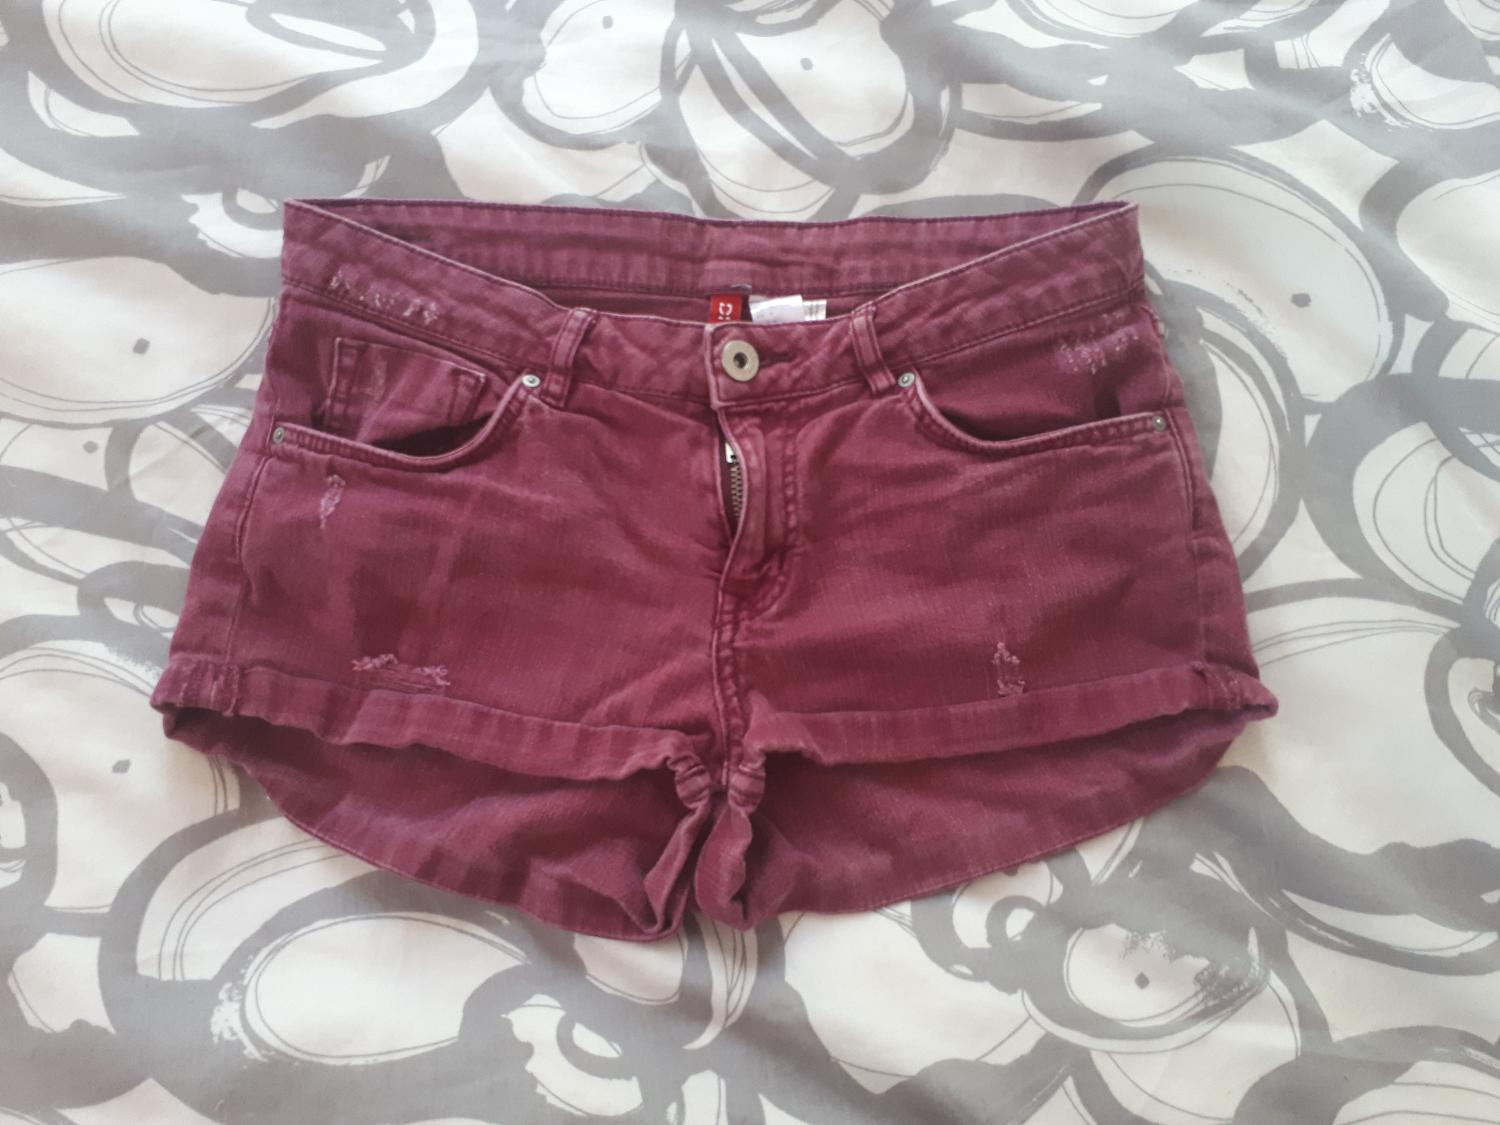 41ad31db3 Best H&m Maroon Jean Shorts for sale in Kanata, Ontario for 2019